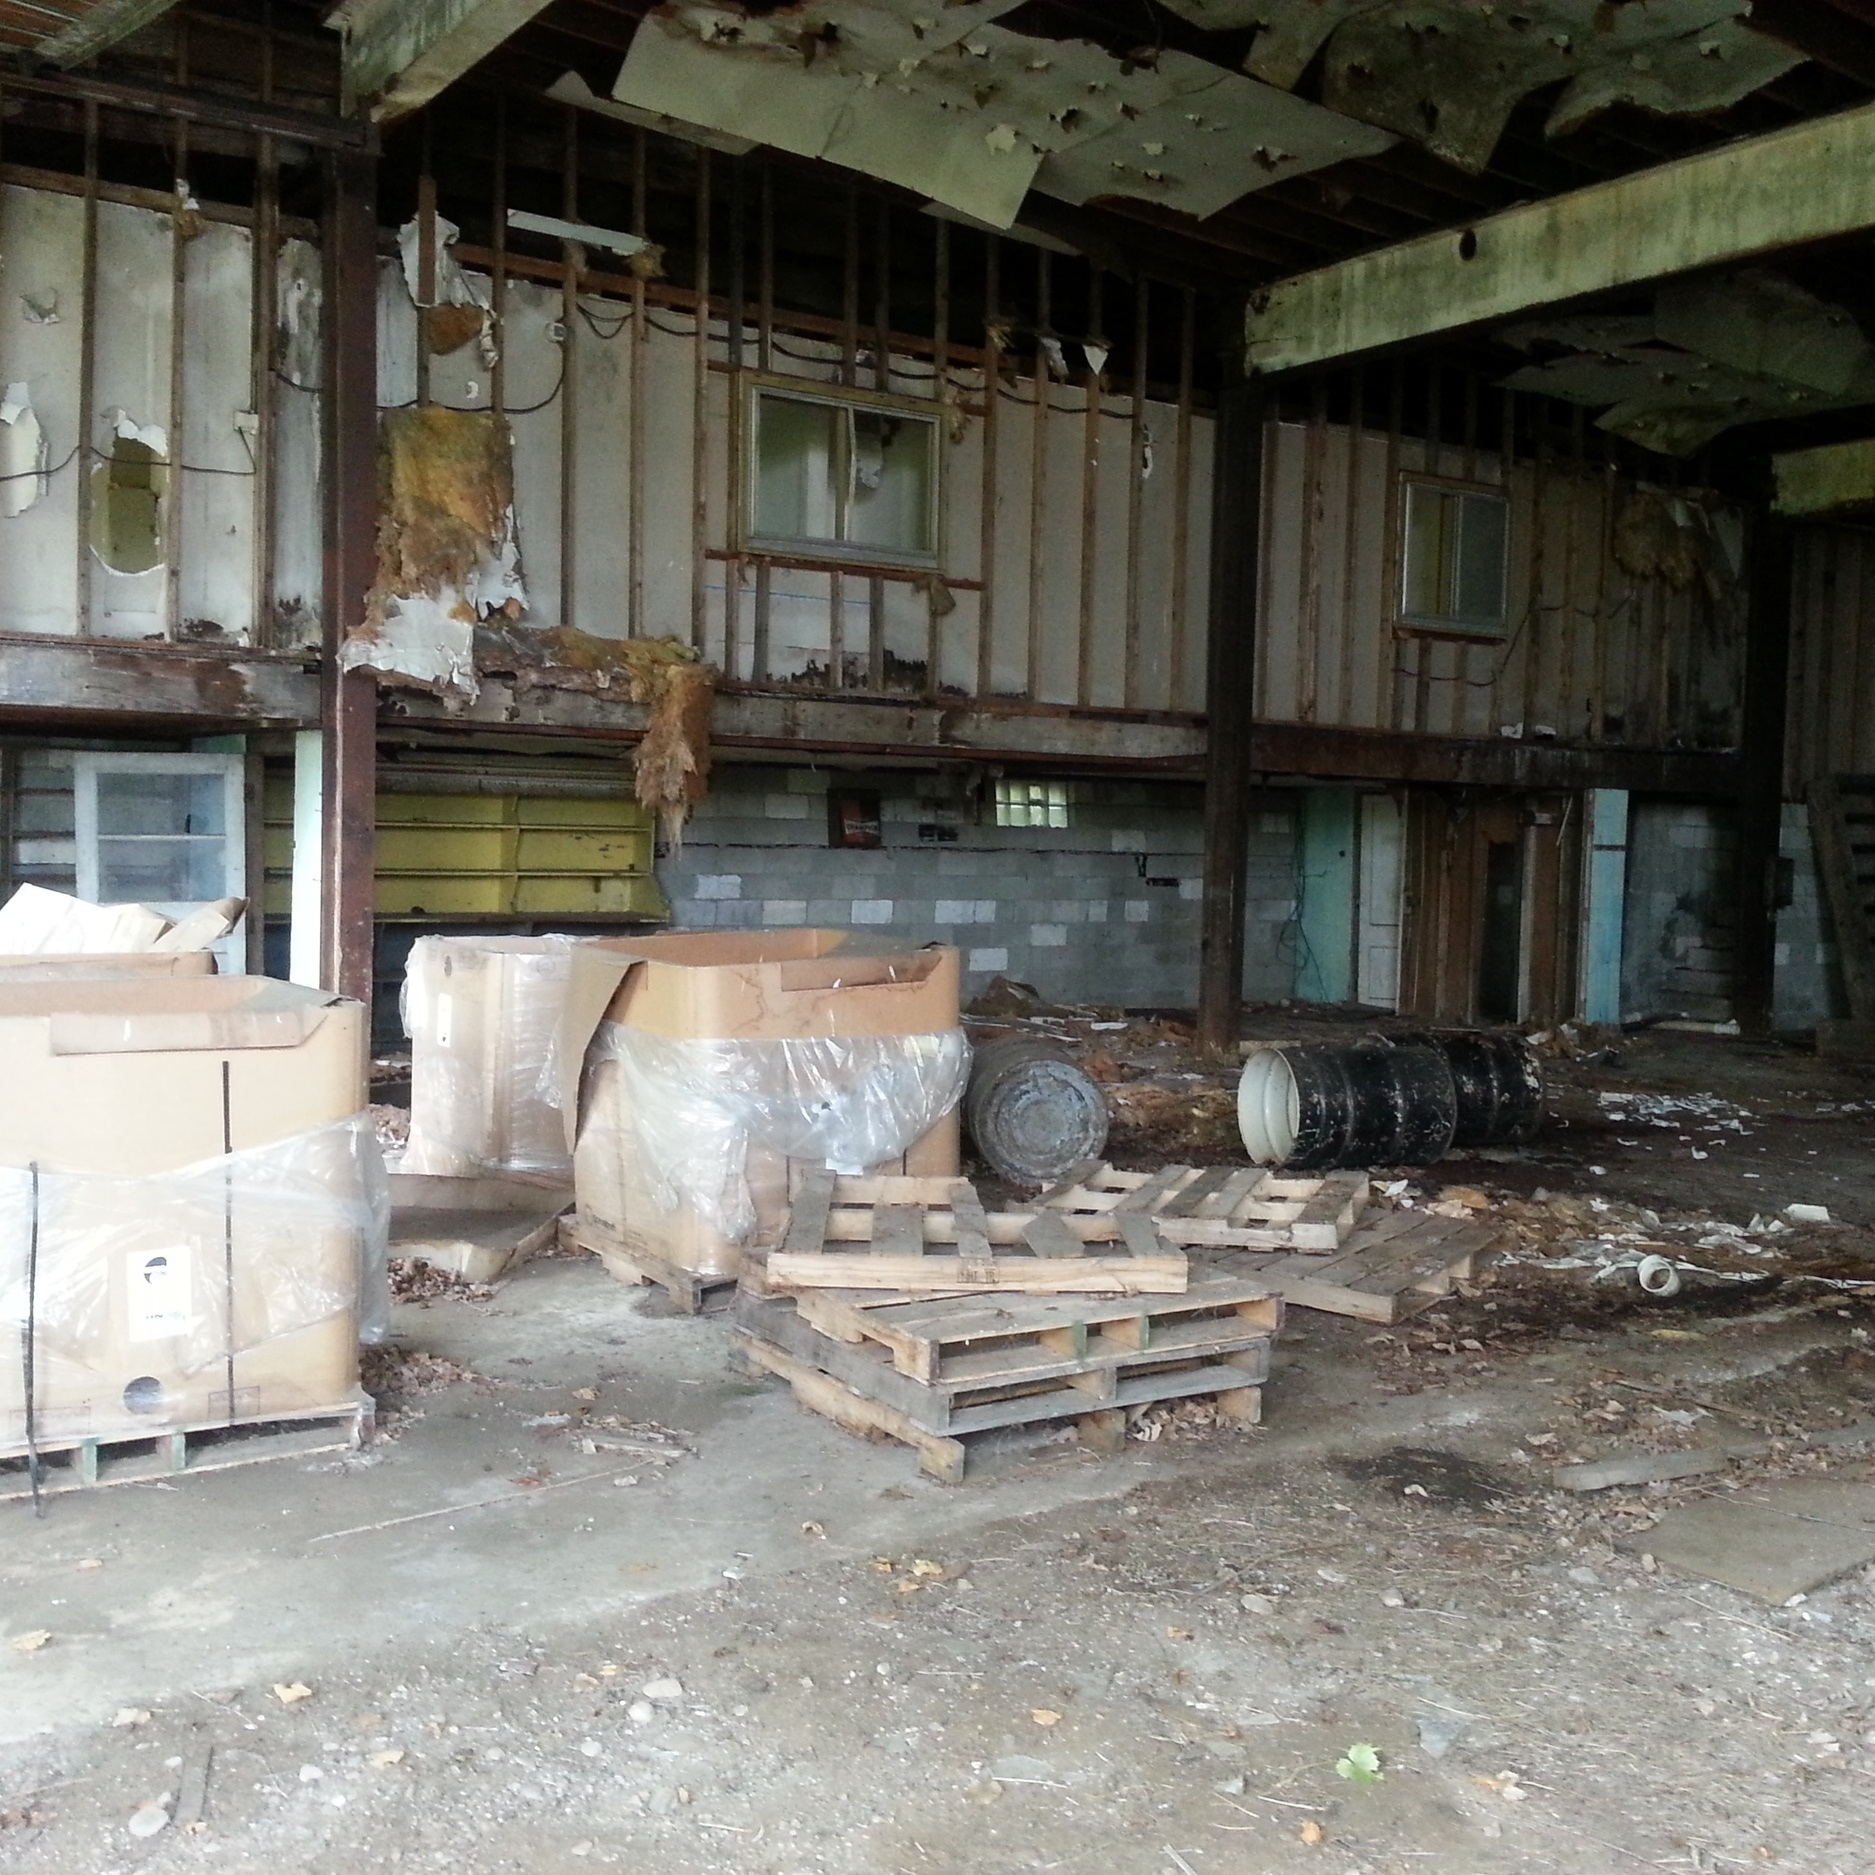 Byron_metalshed_contents.jpg